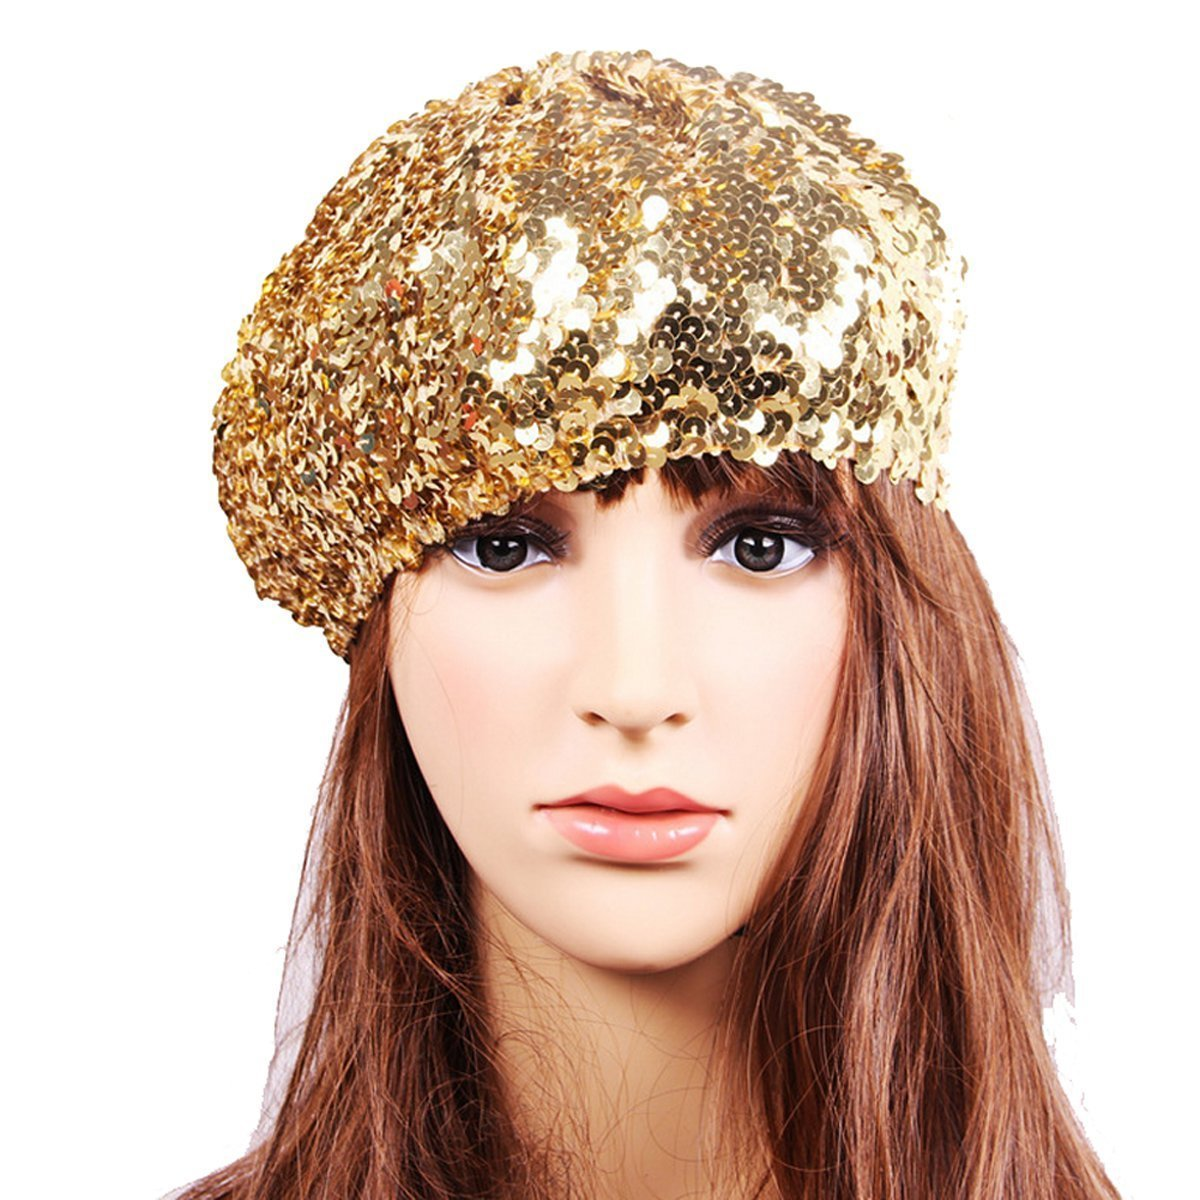 Hippie Hats,  70s Hats LVOW Womens Fashion Fun Sparkle Sequins Shimmer Stretch Beret Beanie Hat $9.99 AT vintagedancer.com